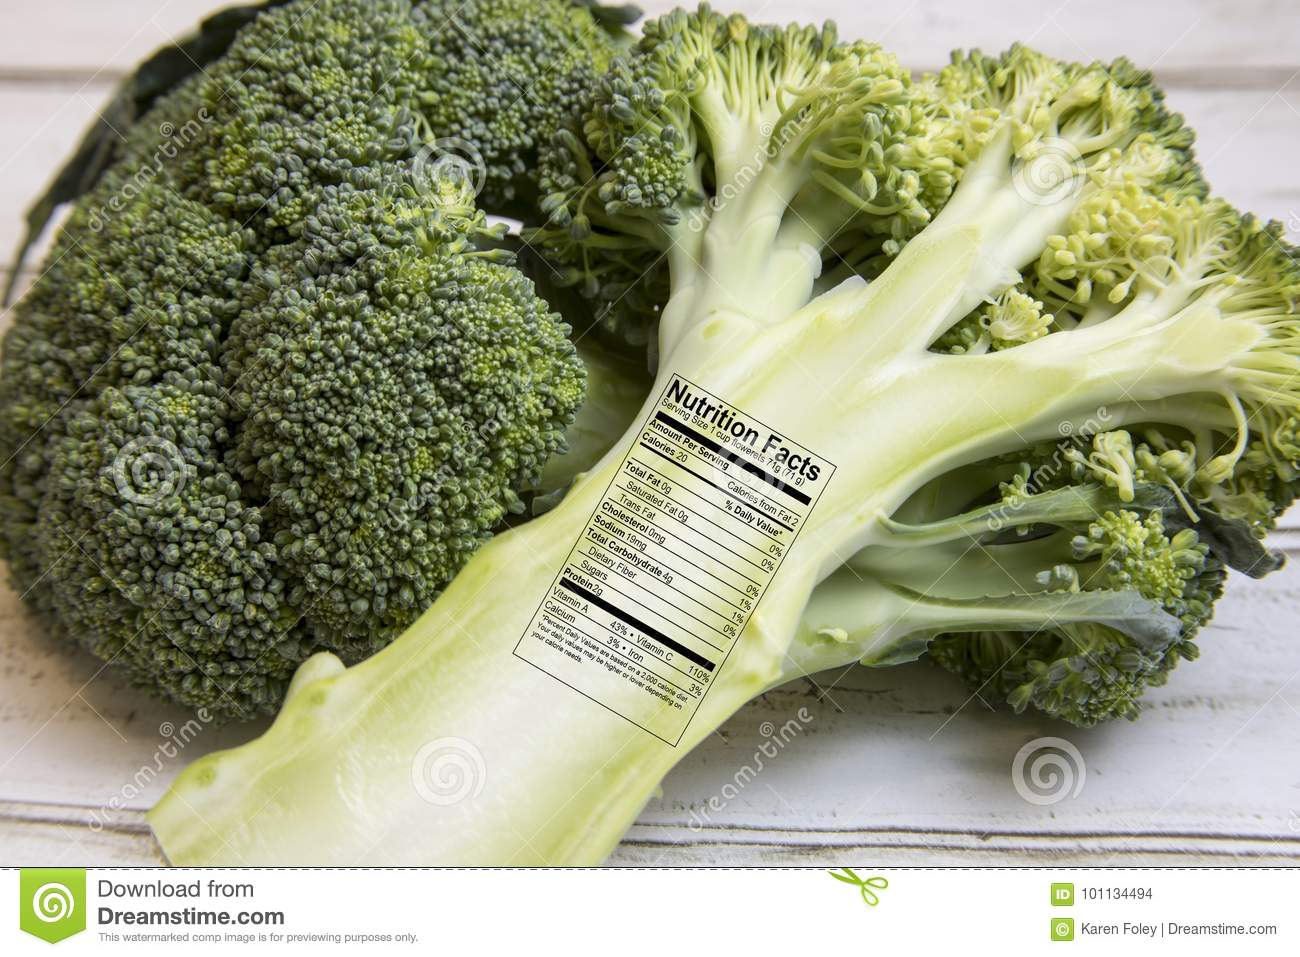 Fresh Green Broccoli Spears With Nutrition Facts Label Stock Photo Image Of Spear Broccoli 101134494